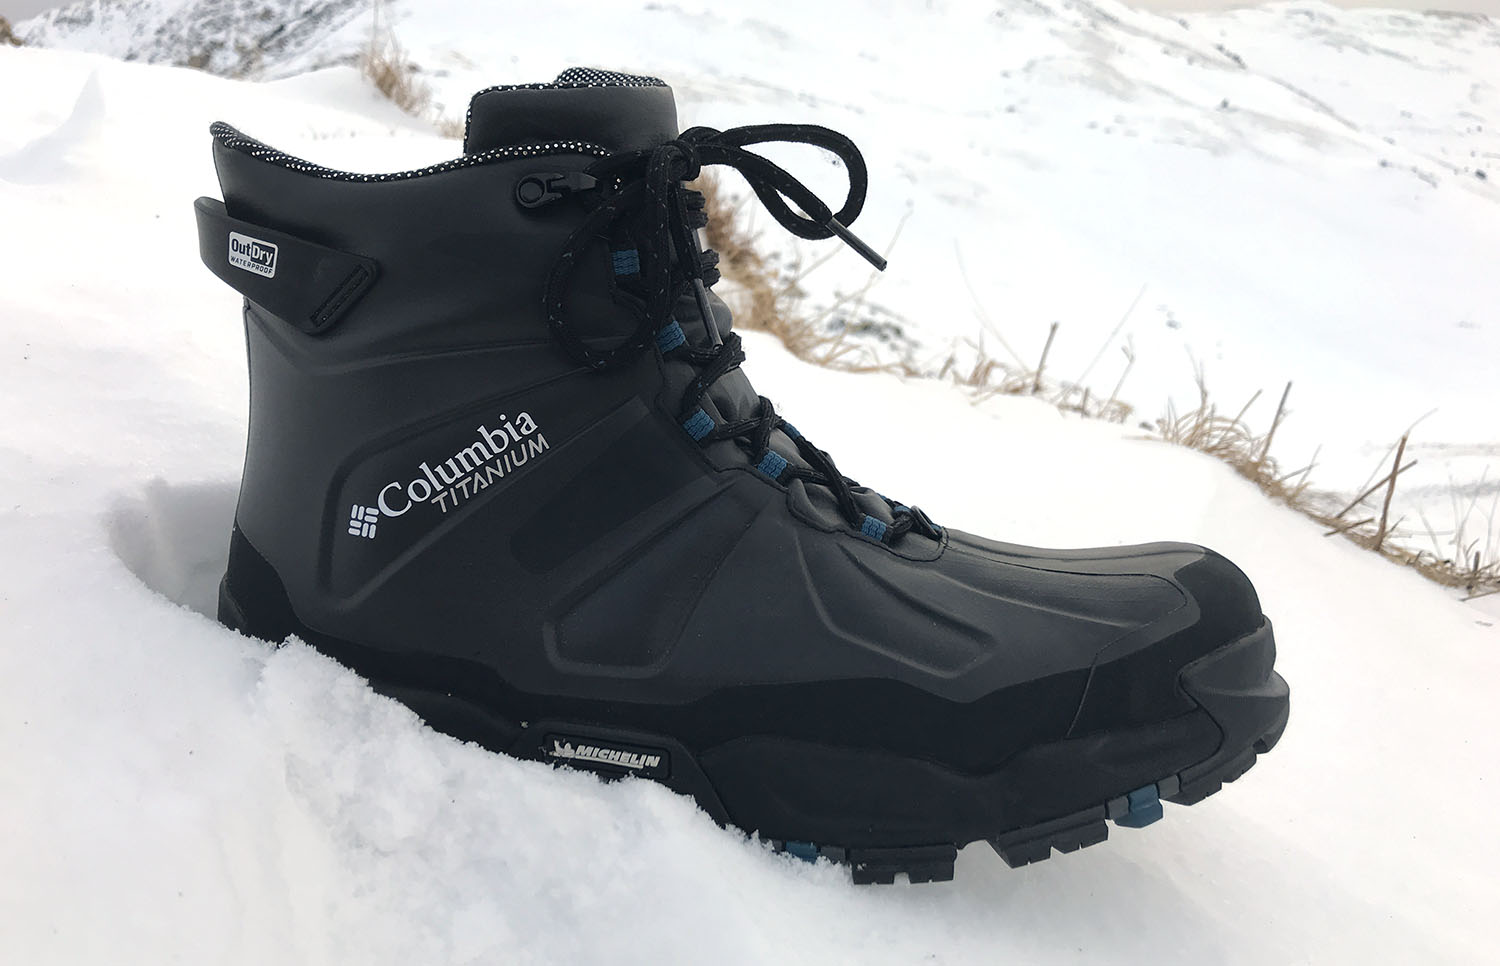 608a02115fb Best Winter Boots for Men | GearJunkie